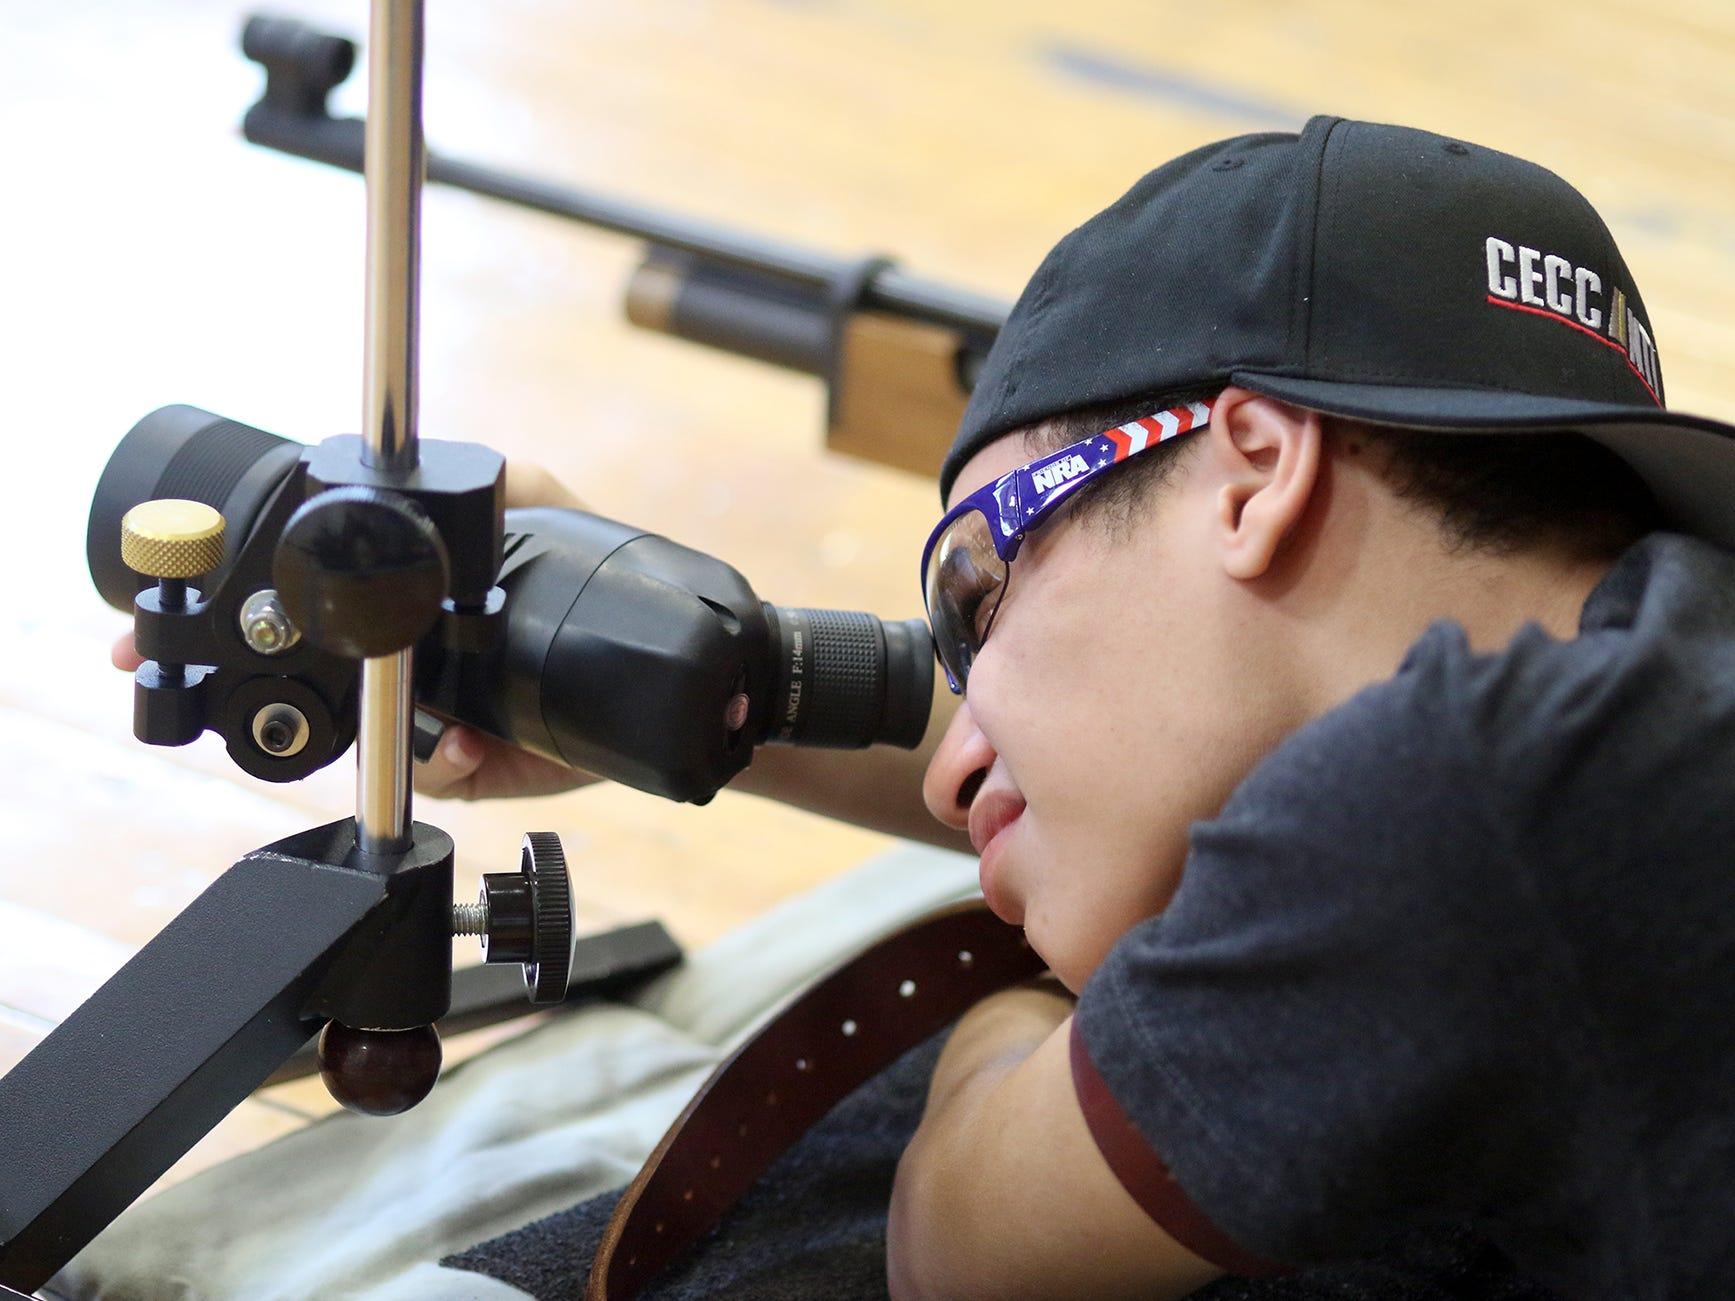 Student Braden Brown, 15, scopes out the target at the South Kitsap High School NJROTC Wolf Battalion Rifle Camp runs from August 8-10, at the National Guard Armory in Port Orchard.The camp teaches rifle safety, and shooting technics.He is an SK NJROTC member.